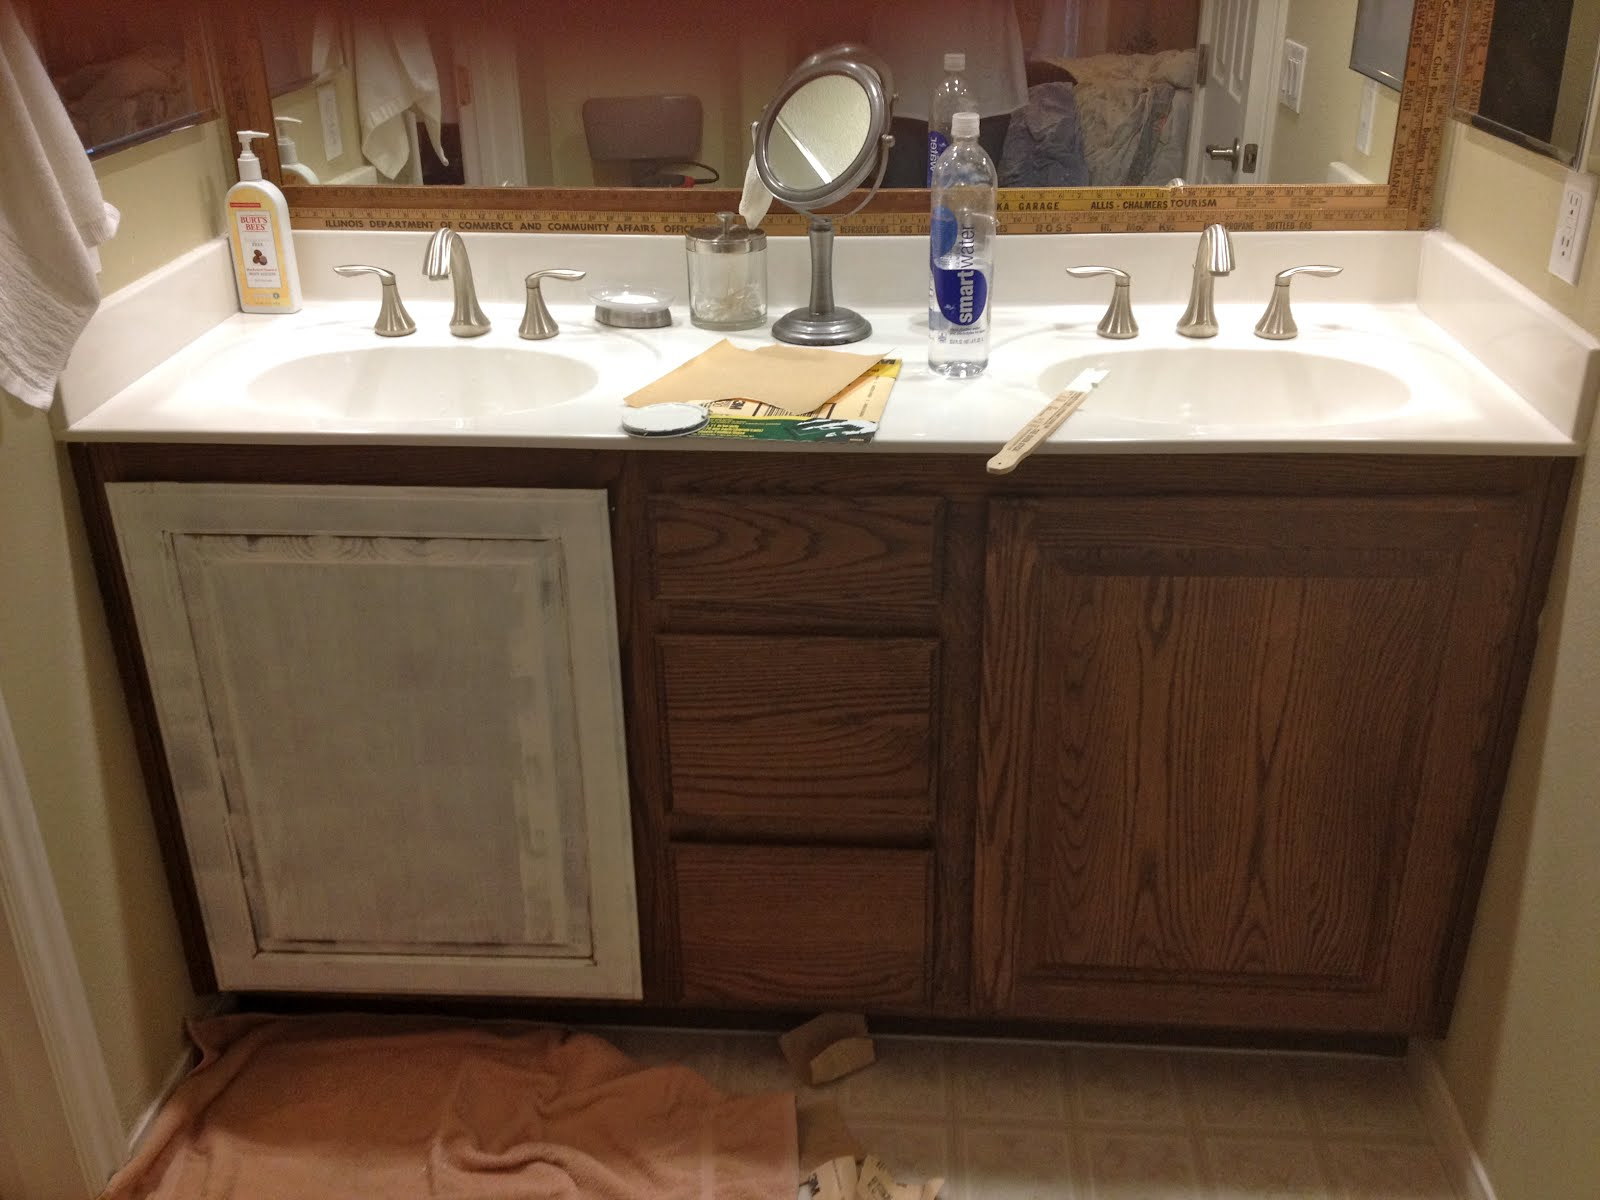 Vintage marketplace white redirection bathroom redo - How to redo bathroom cabinets for cheap ...